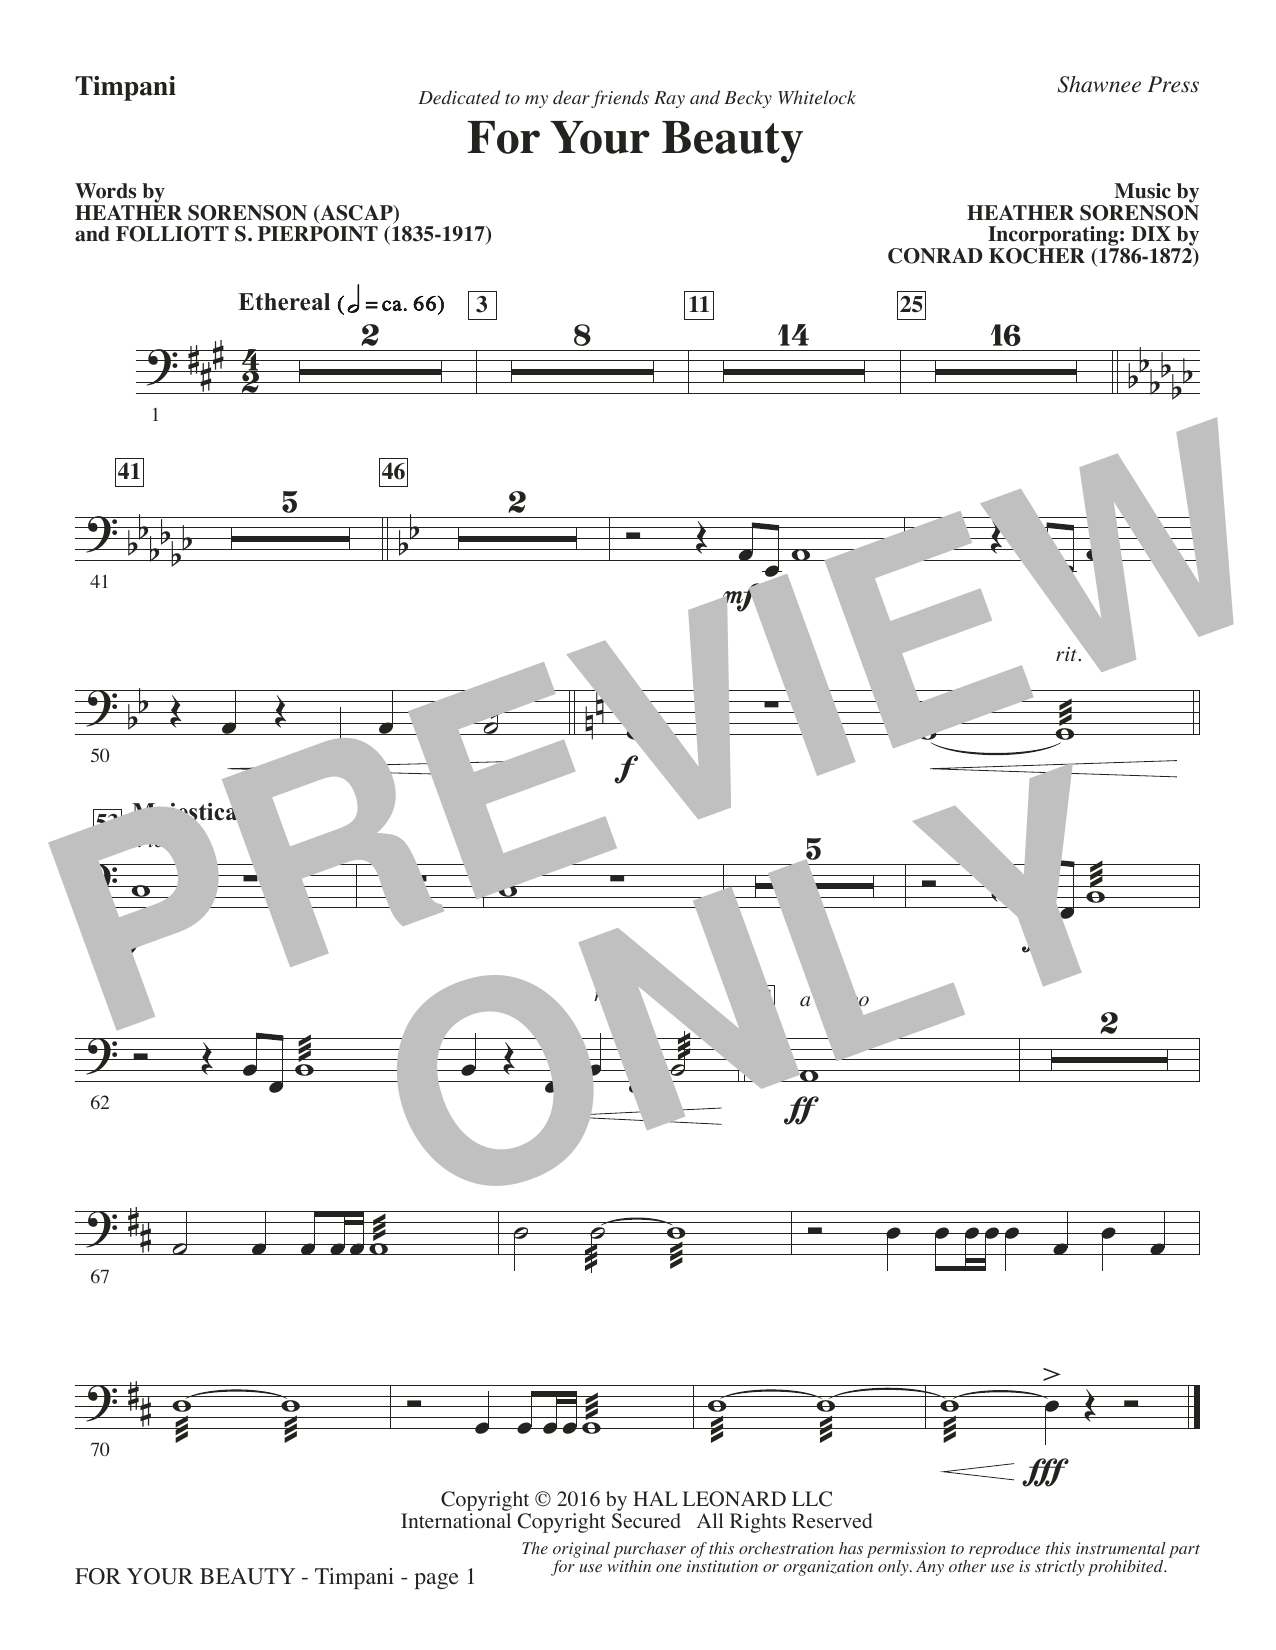 For Your Beauty - Timpani Sheet Music